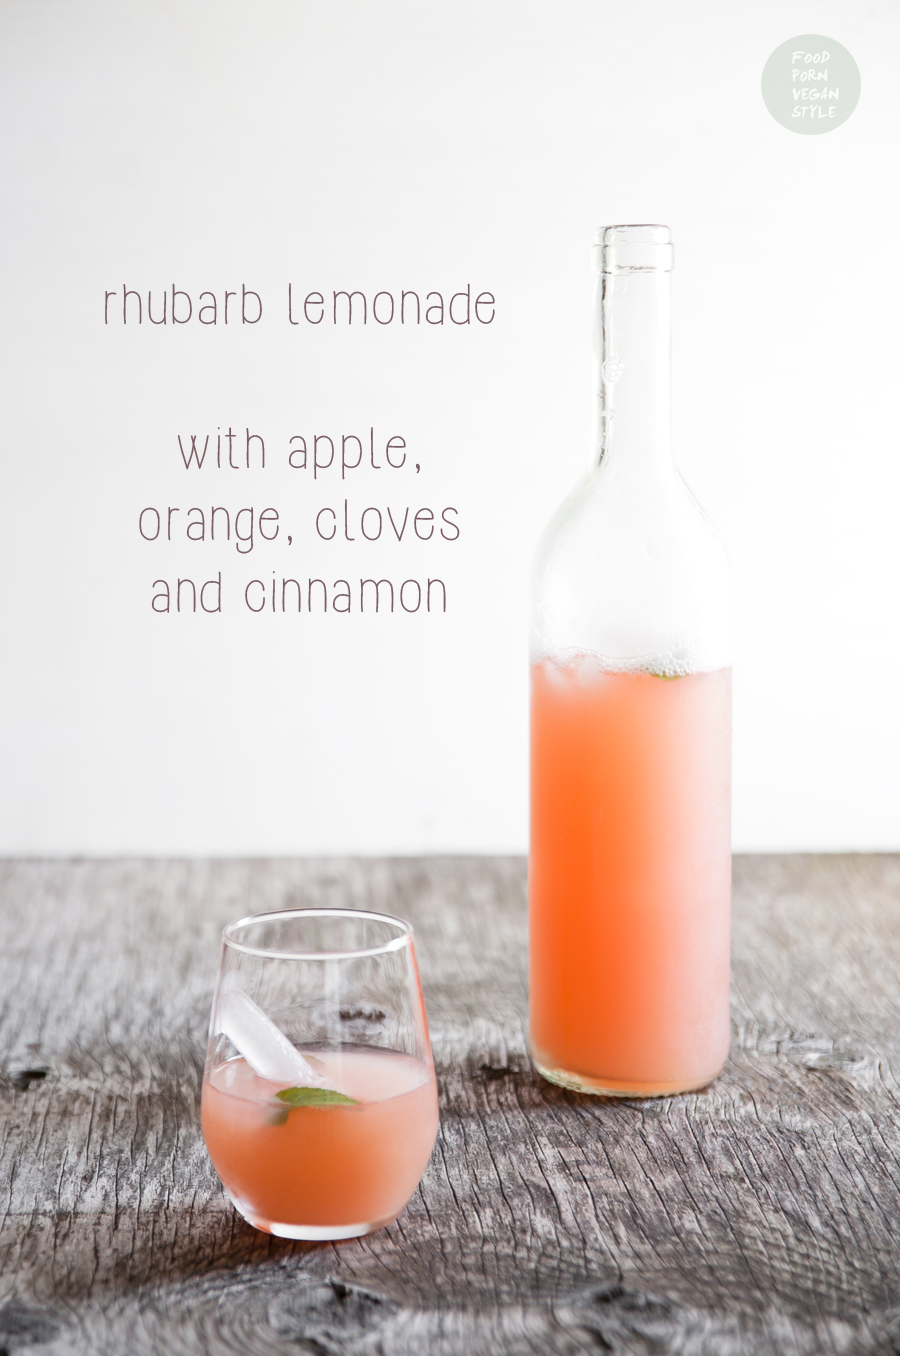 Rhubarb lemonade with apple, orange, cloves and cinnamon